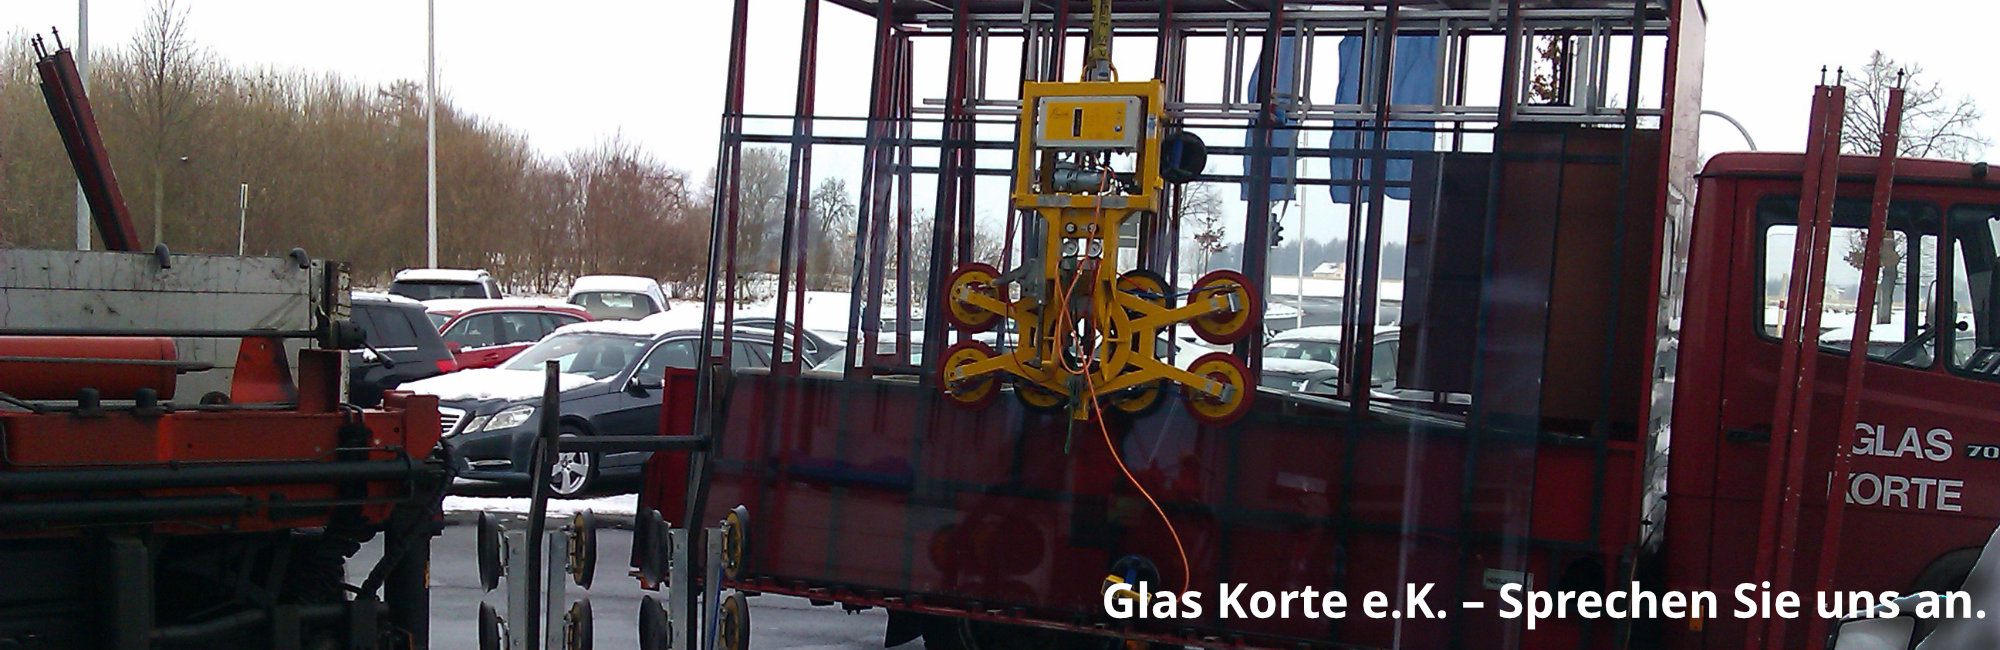 Glas Korte Bad Salzuflen mit Text